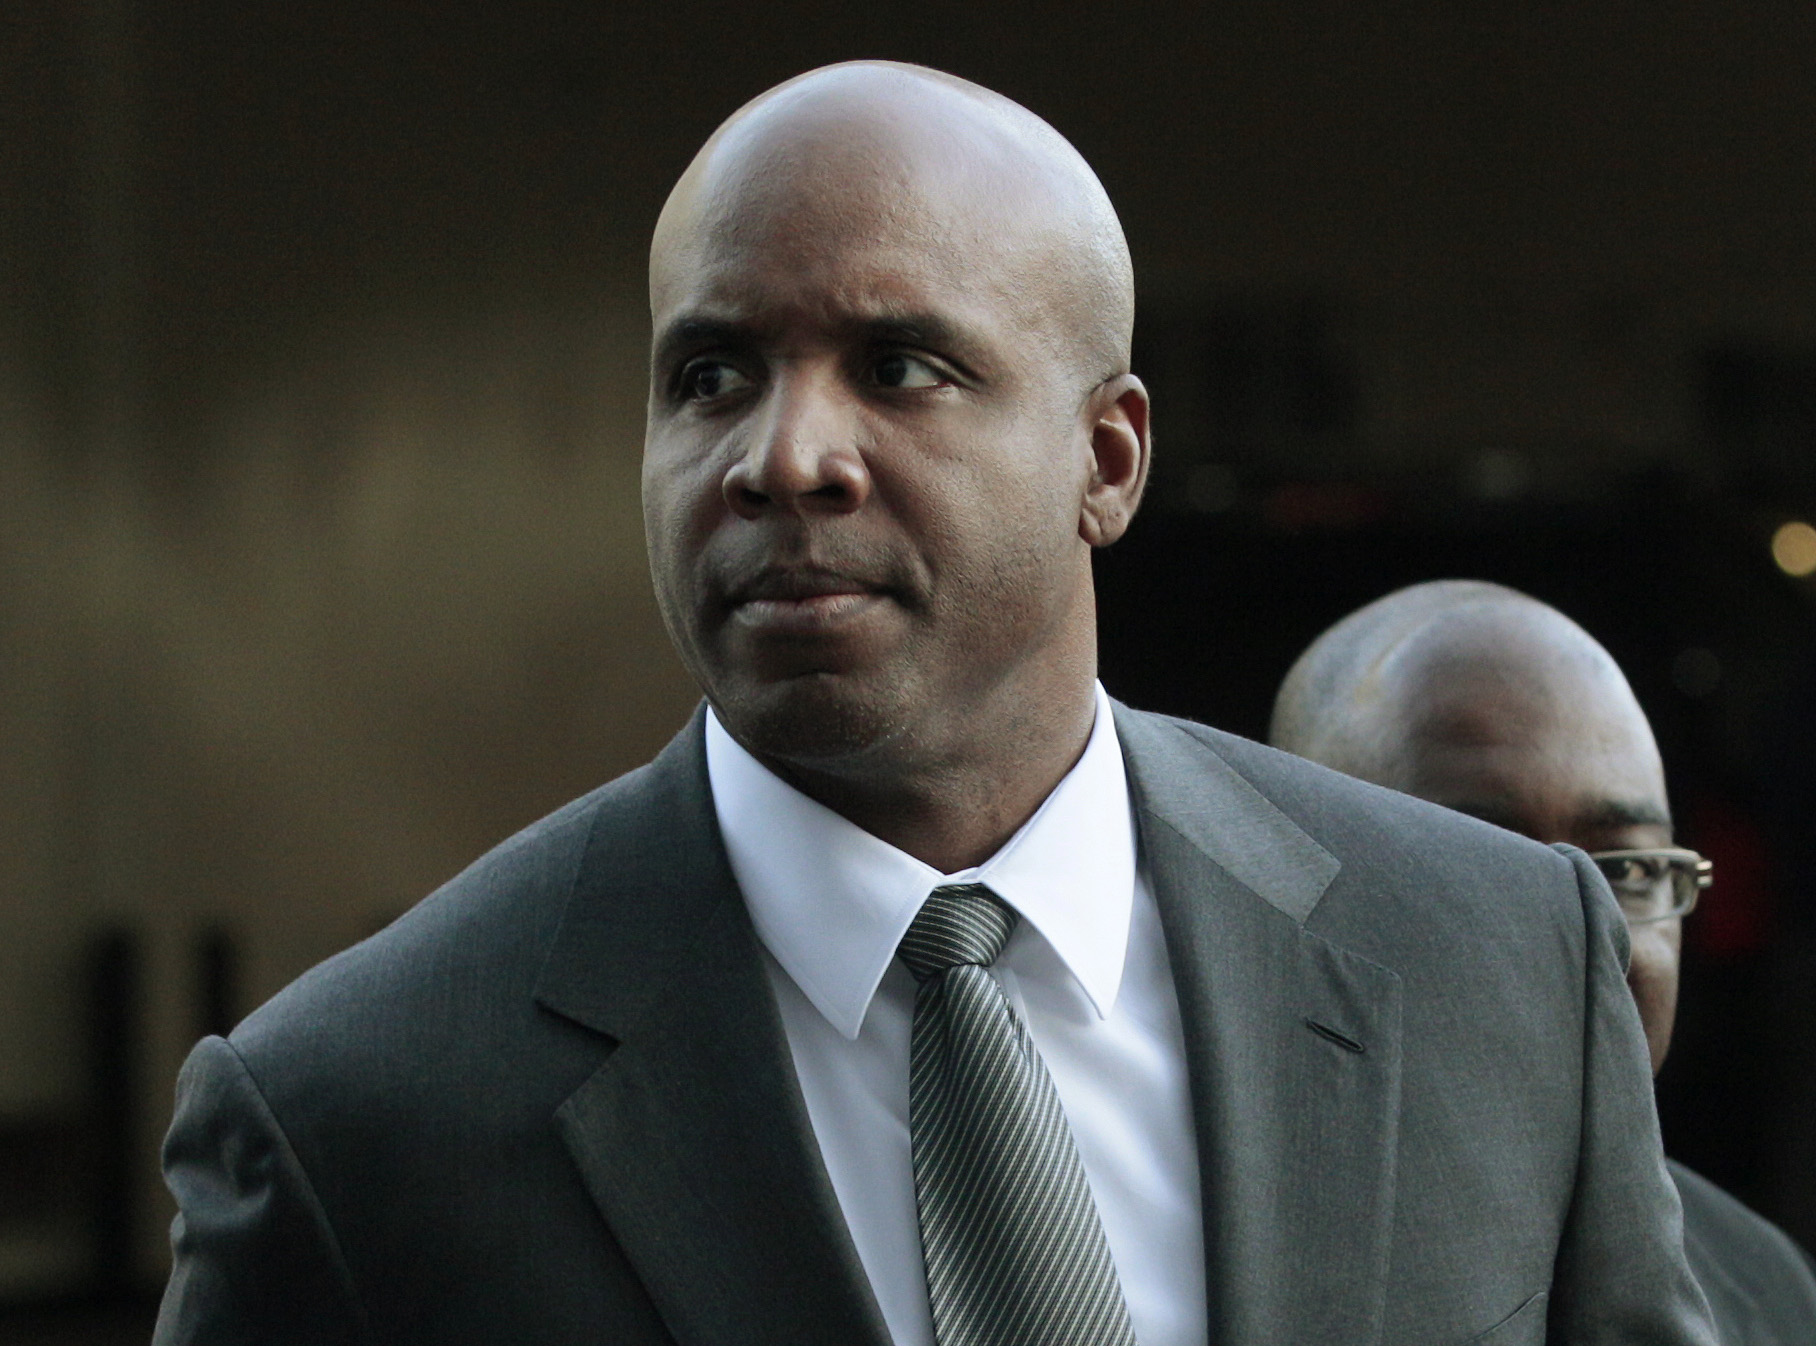 FILE - In ta March 29, 2011, file photo, former baseball player Barry Bonds arrives for his trial at federal court in San Francisco.  Federal prosecutors Tuesday April 28, 2015, are considering whether to ask the U.S. Supreme Court to reinstate Barry Bond